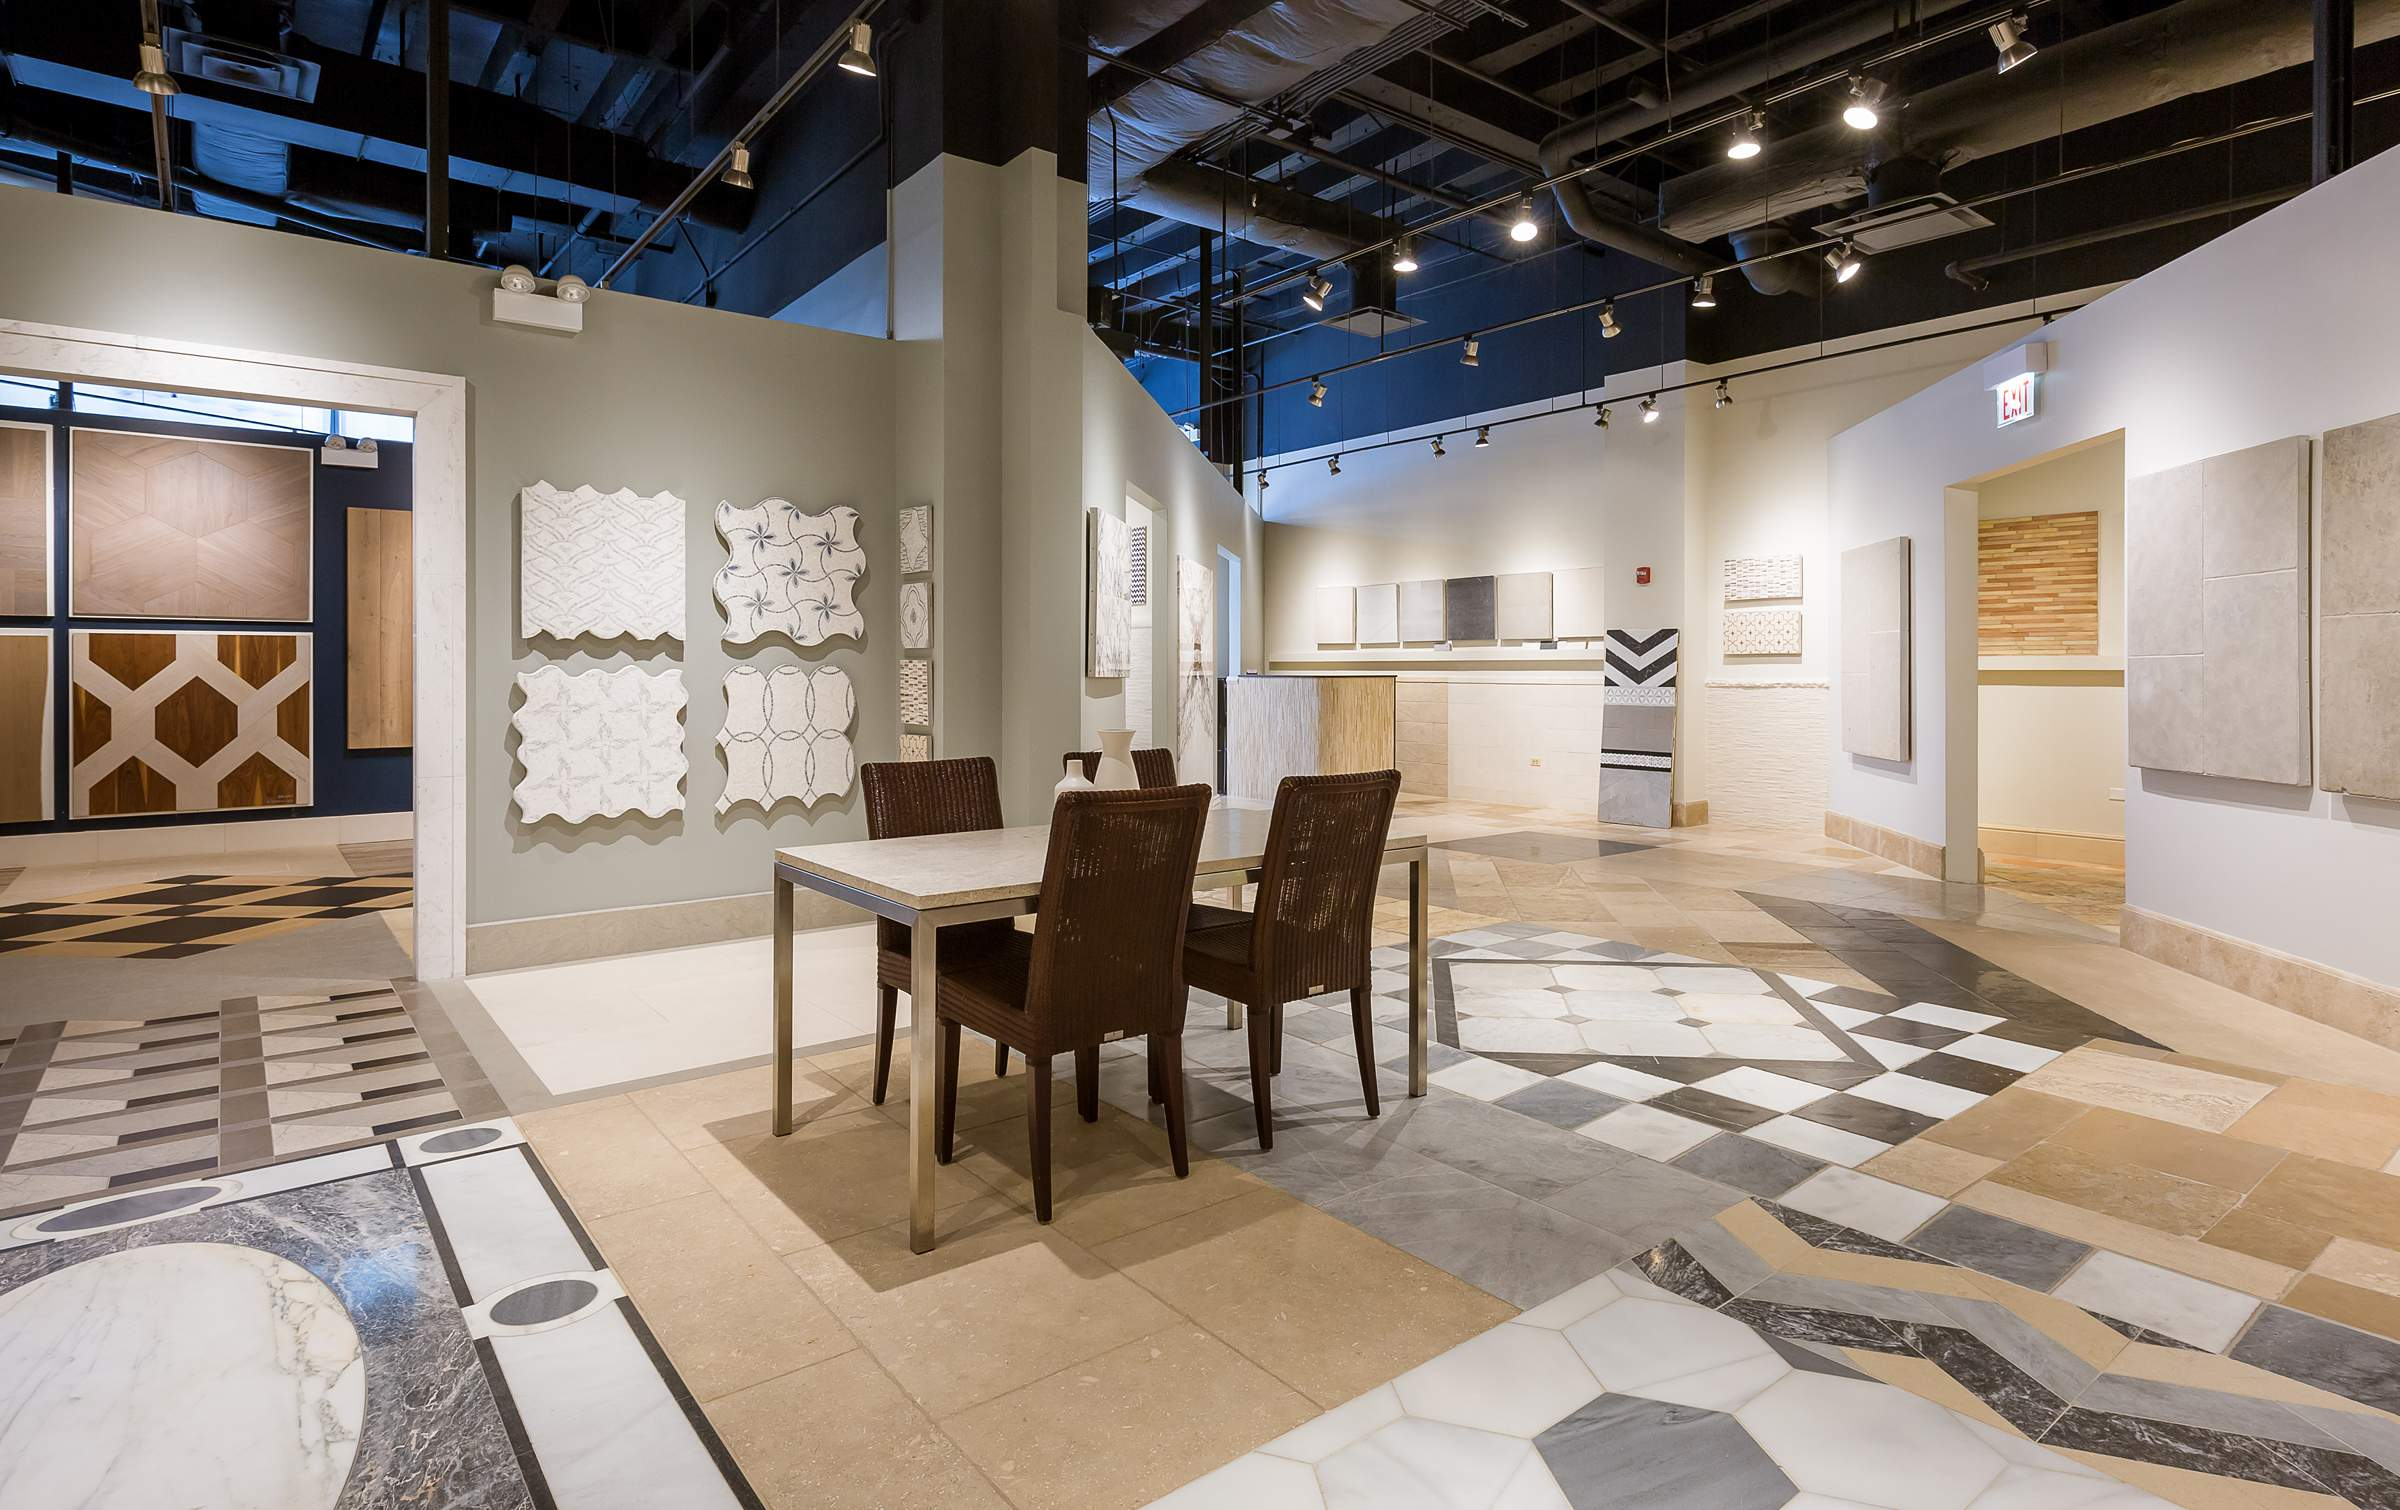 interior architectural photography for showrooms in home furnishings shop lux home